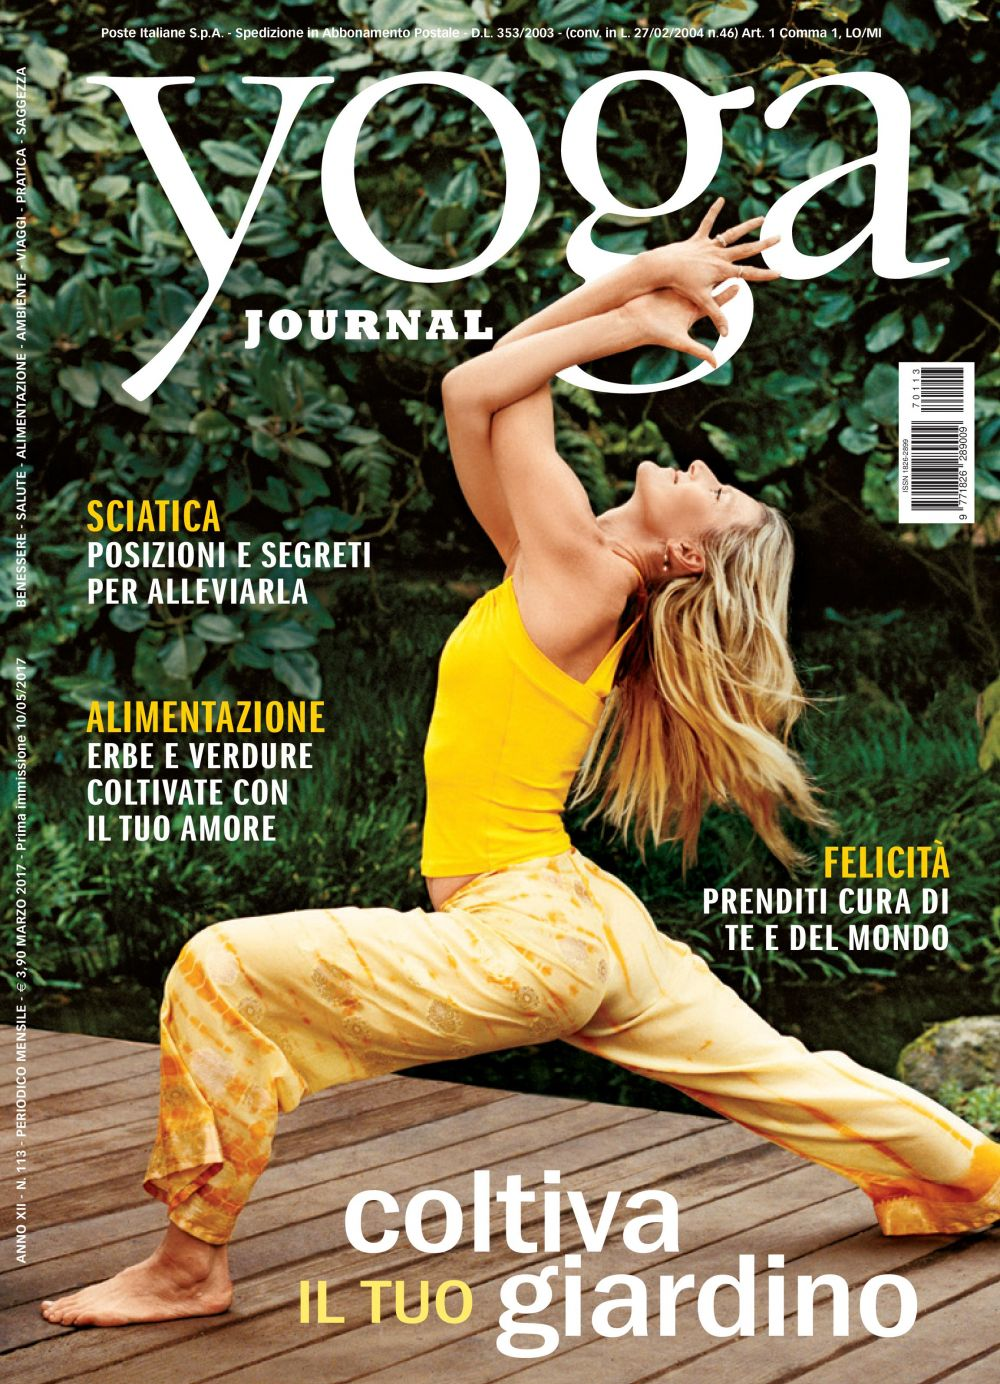 Yoga Journal Maggio n. 113